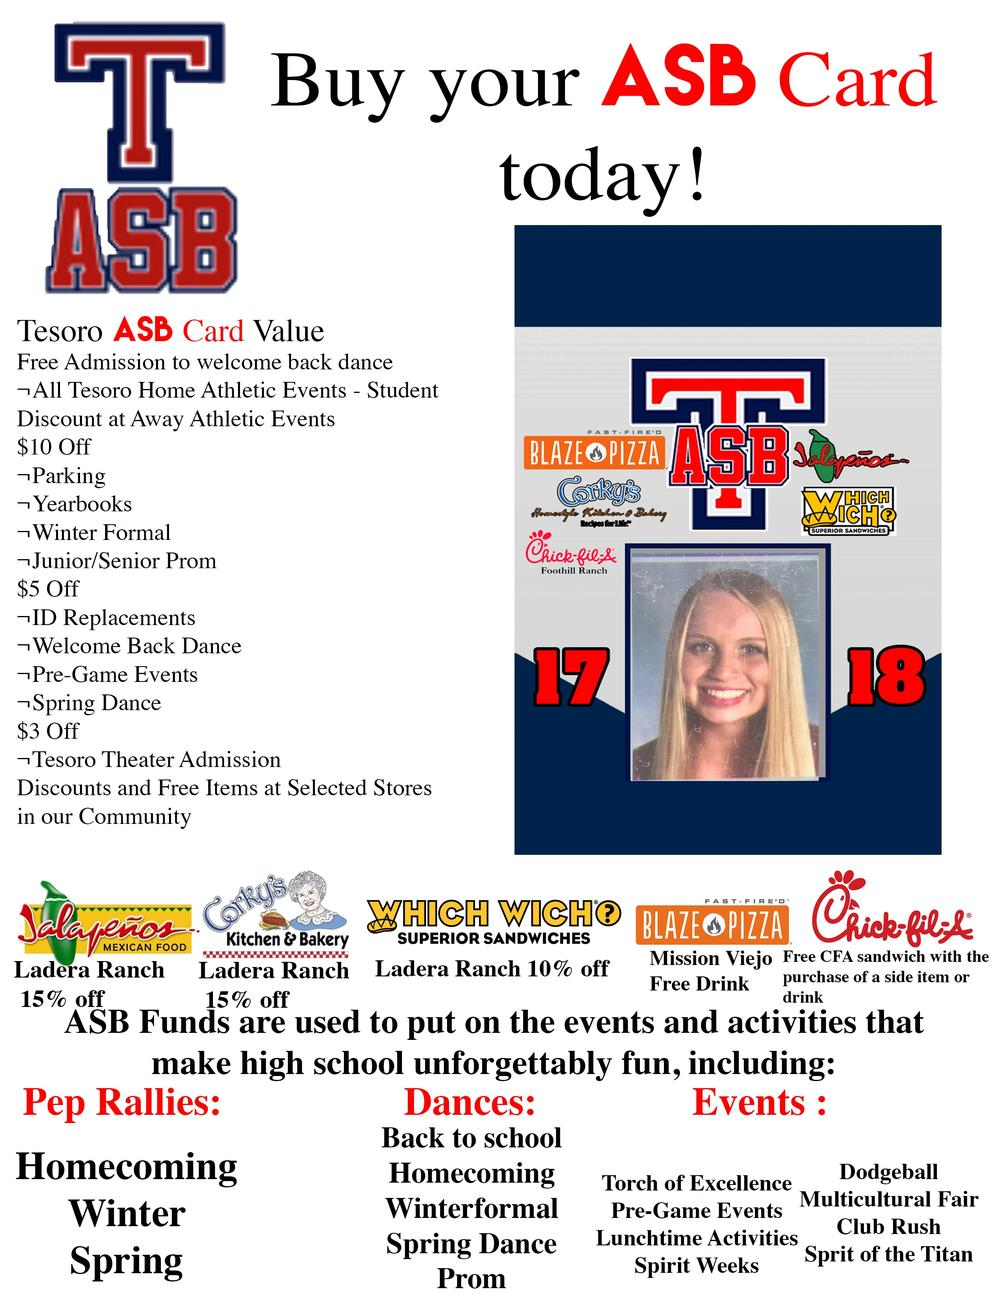 ASB Card information